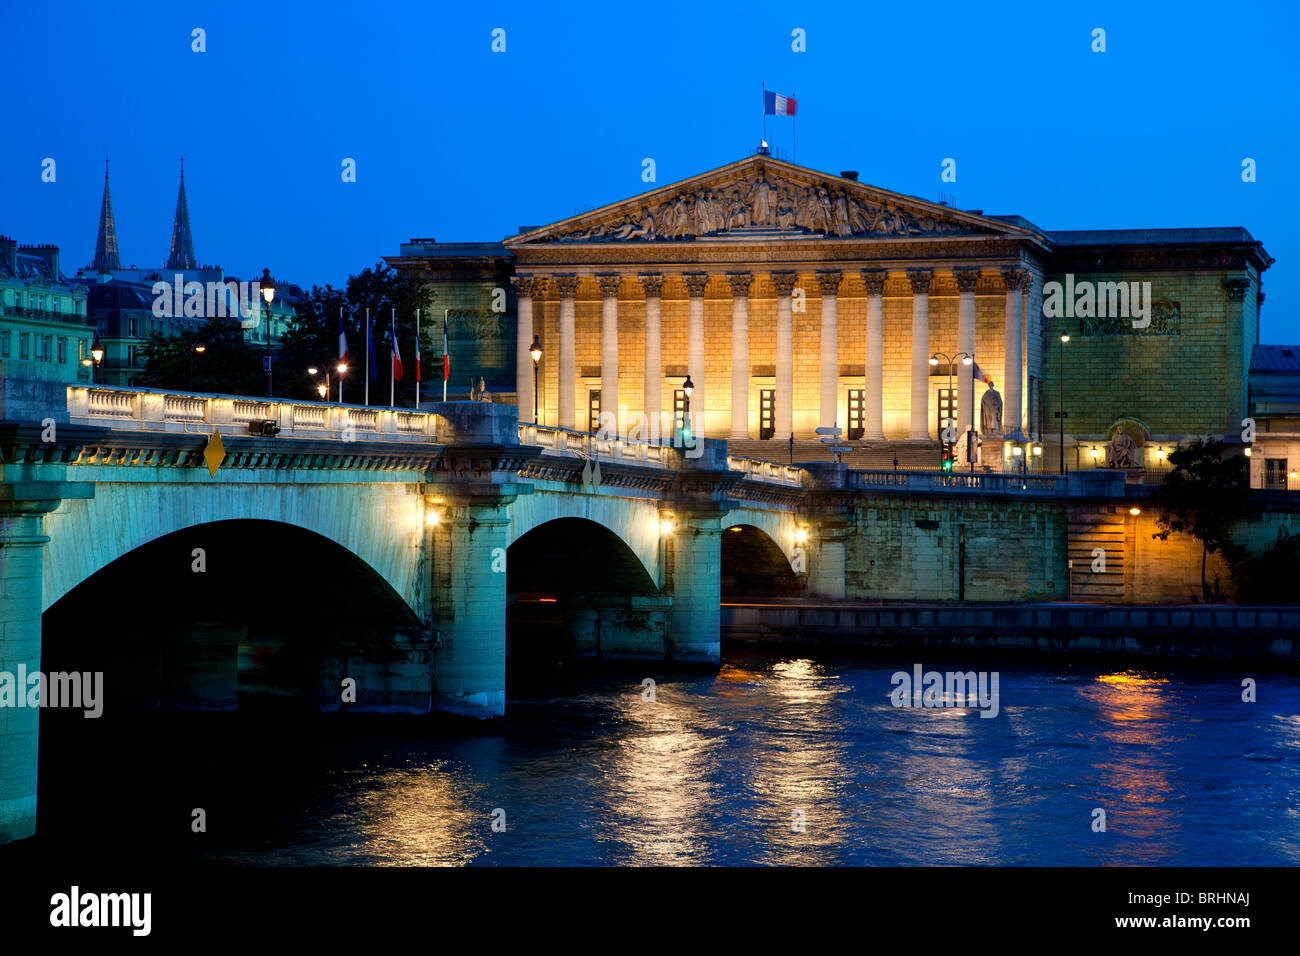 Paris, Palais Bourbon, headquarters for the Assemblee Nationale (French national Assembly) and Pont de la Concorde - Stock Image